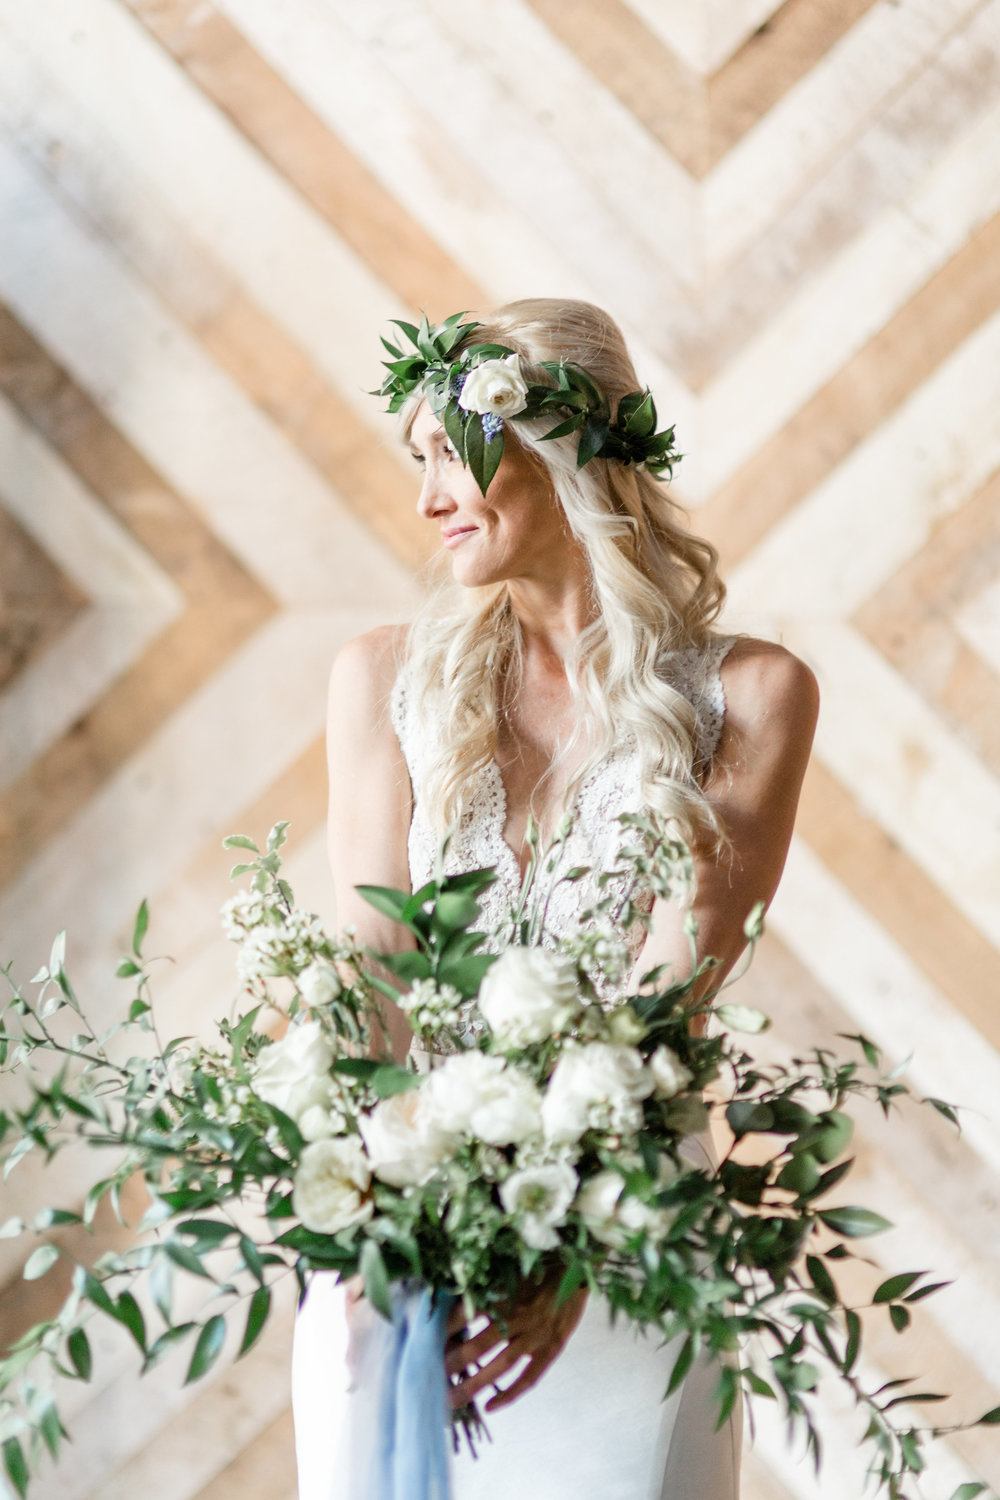 Boho beauty bridal by Elwynn and Cass includes an organic, wild bouquet.  Photo courtesy of http://elwynnandcass.com/